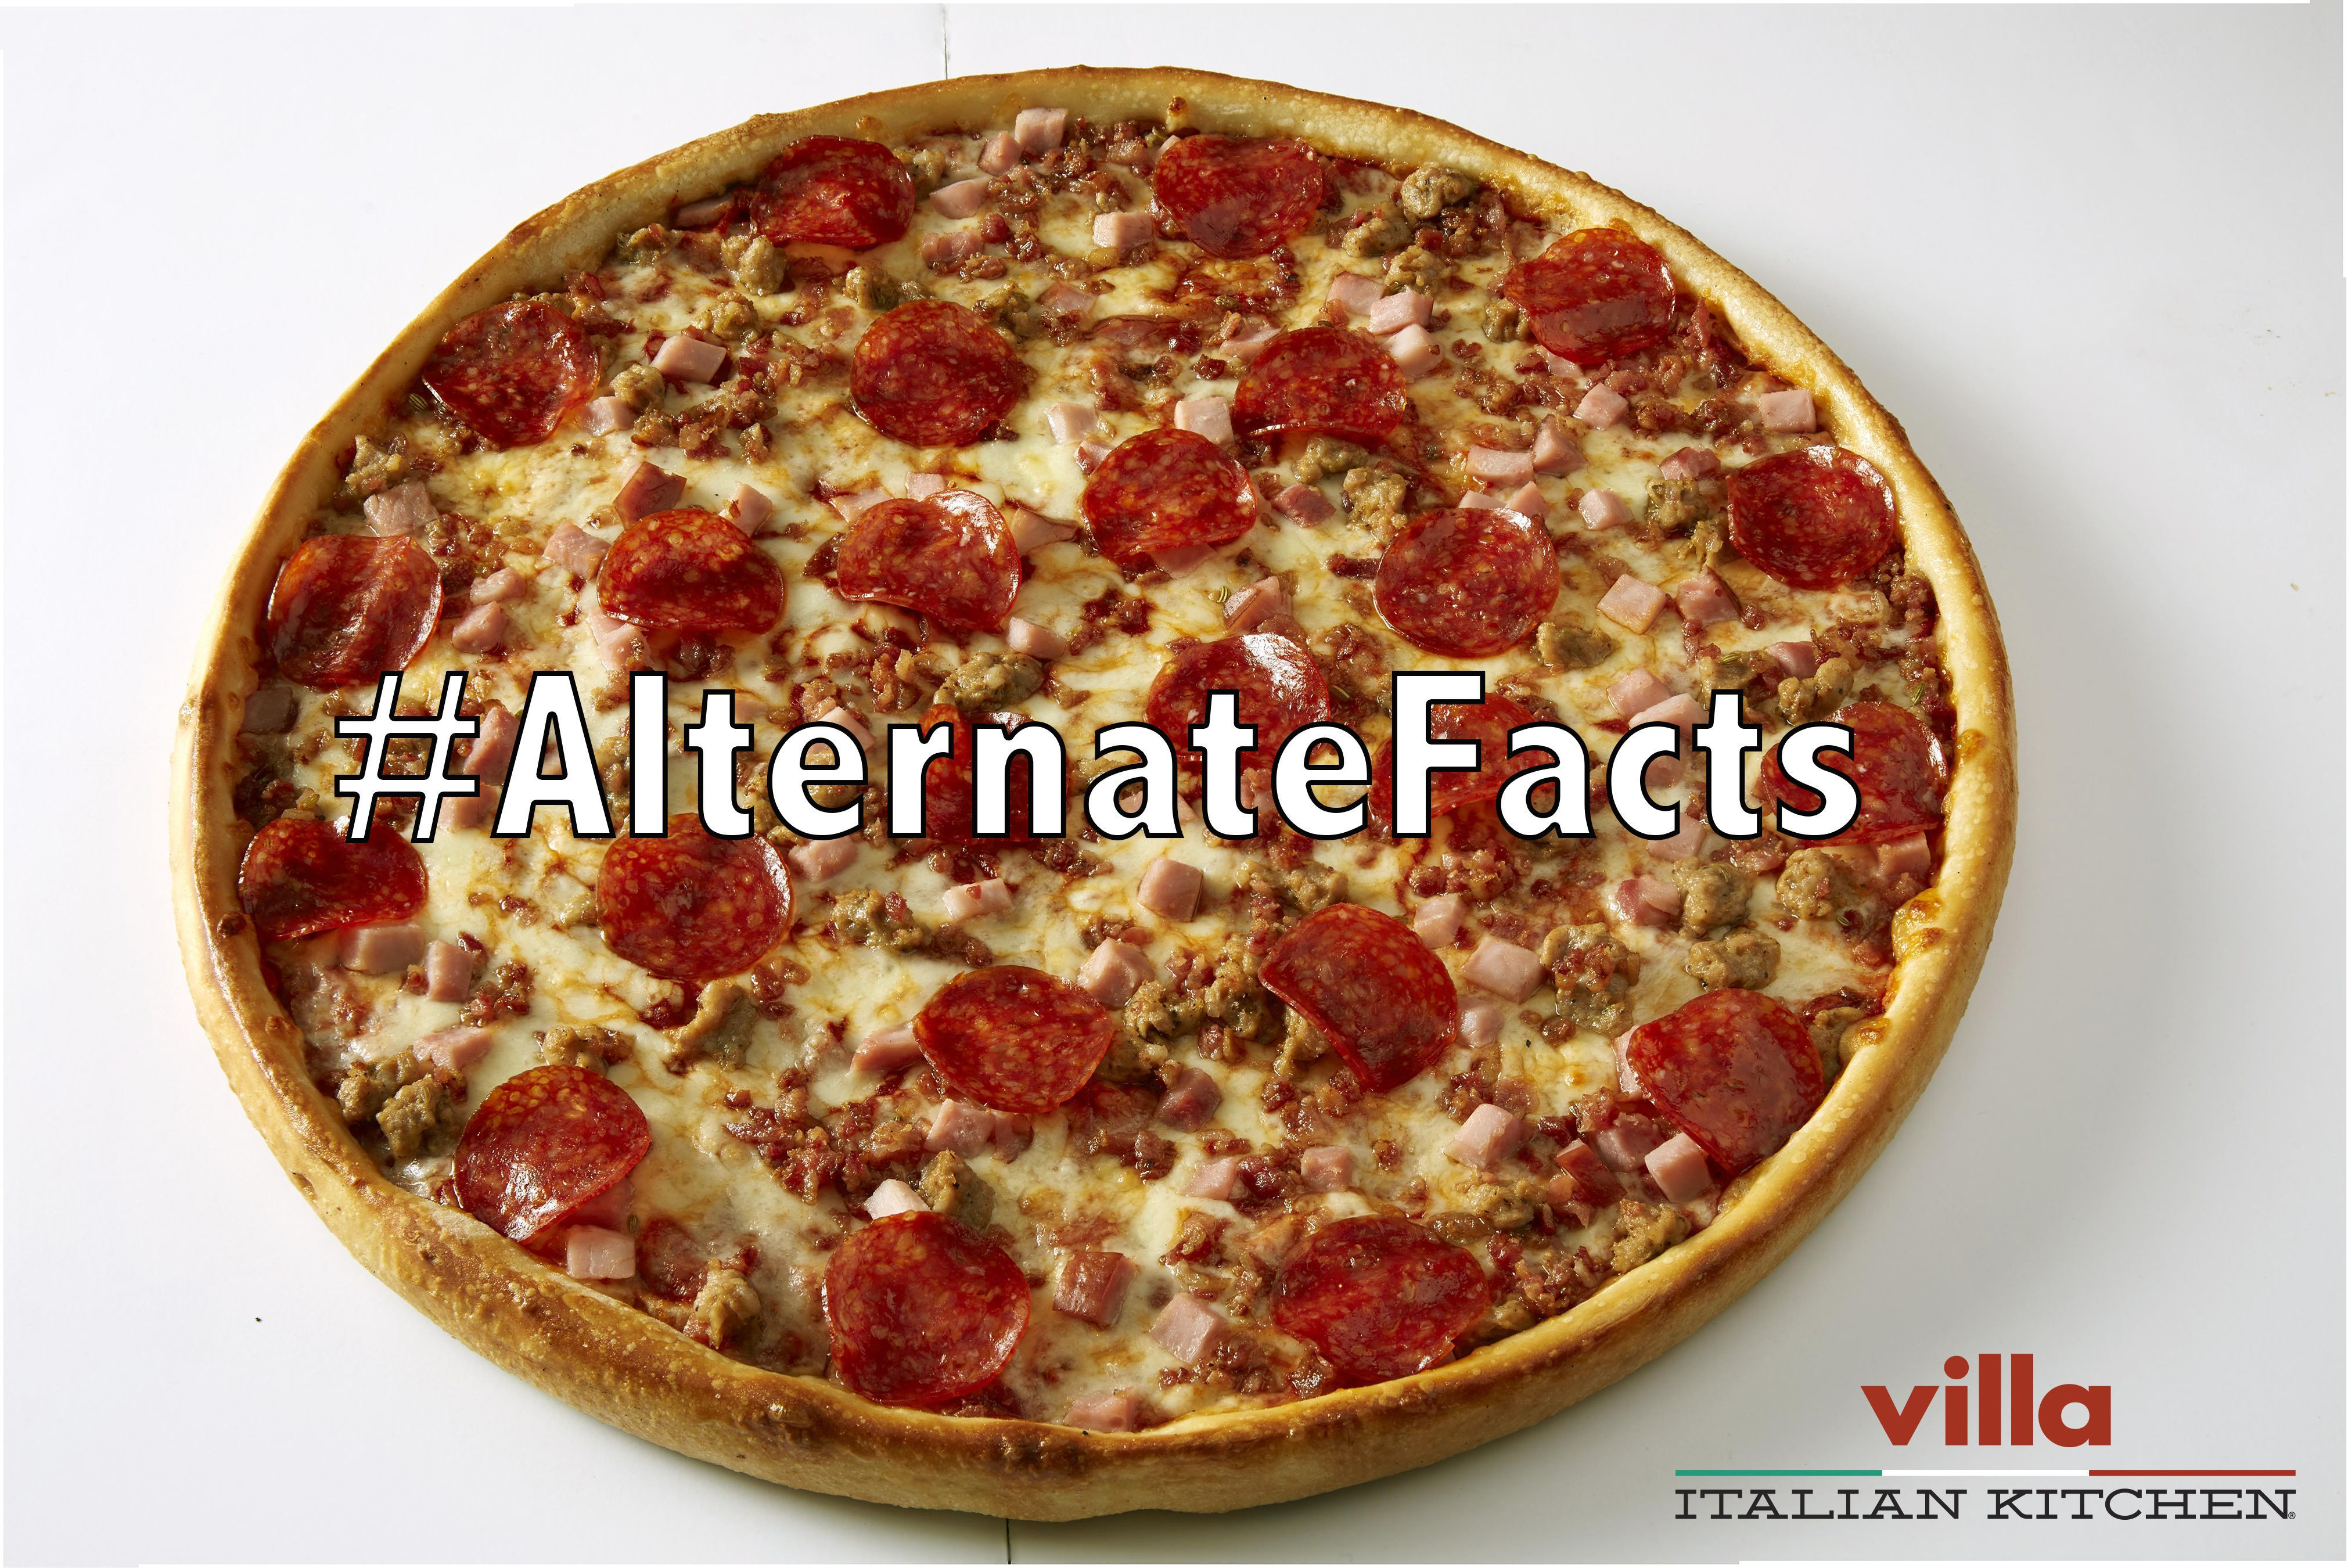 Villa Italian Kitchen Announces The Launch Of The Alternatefacts